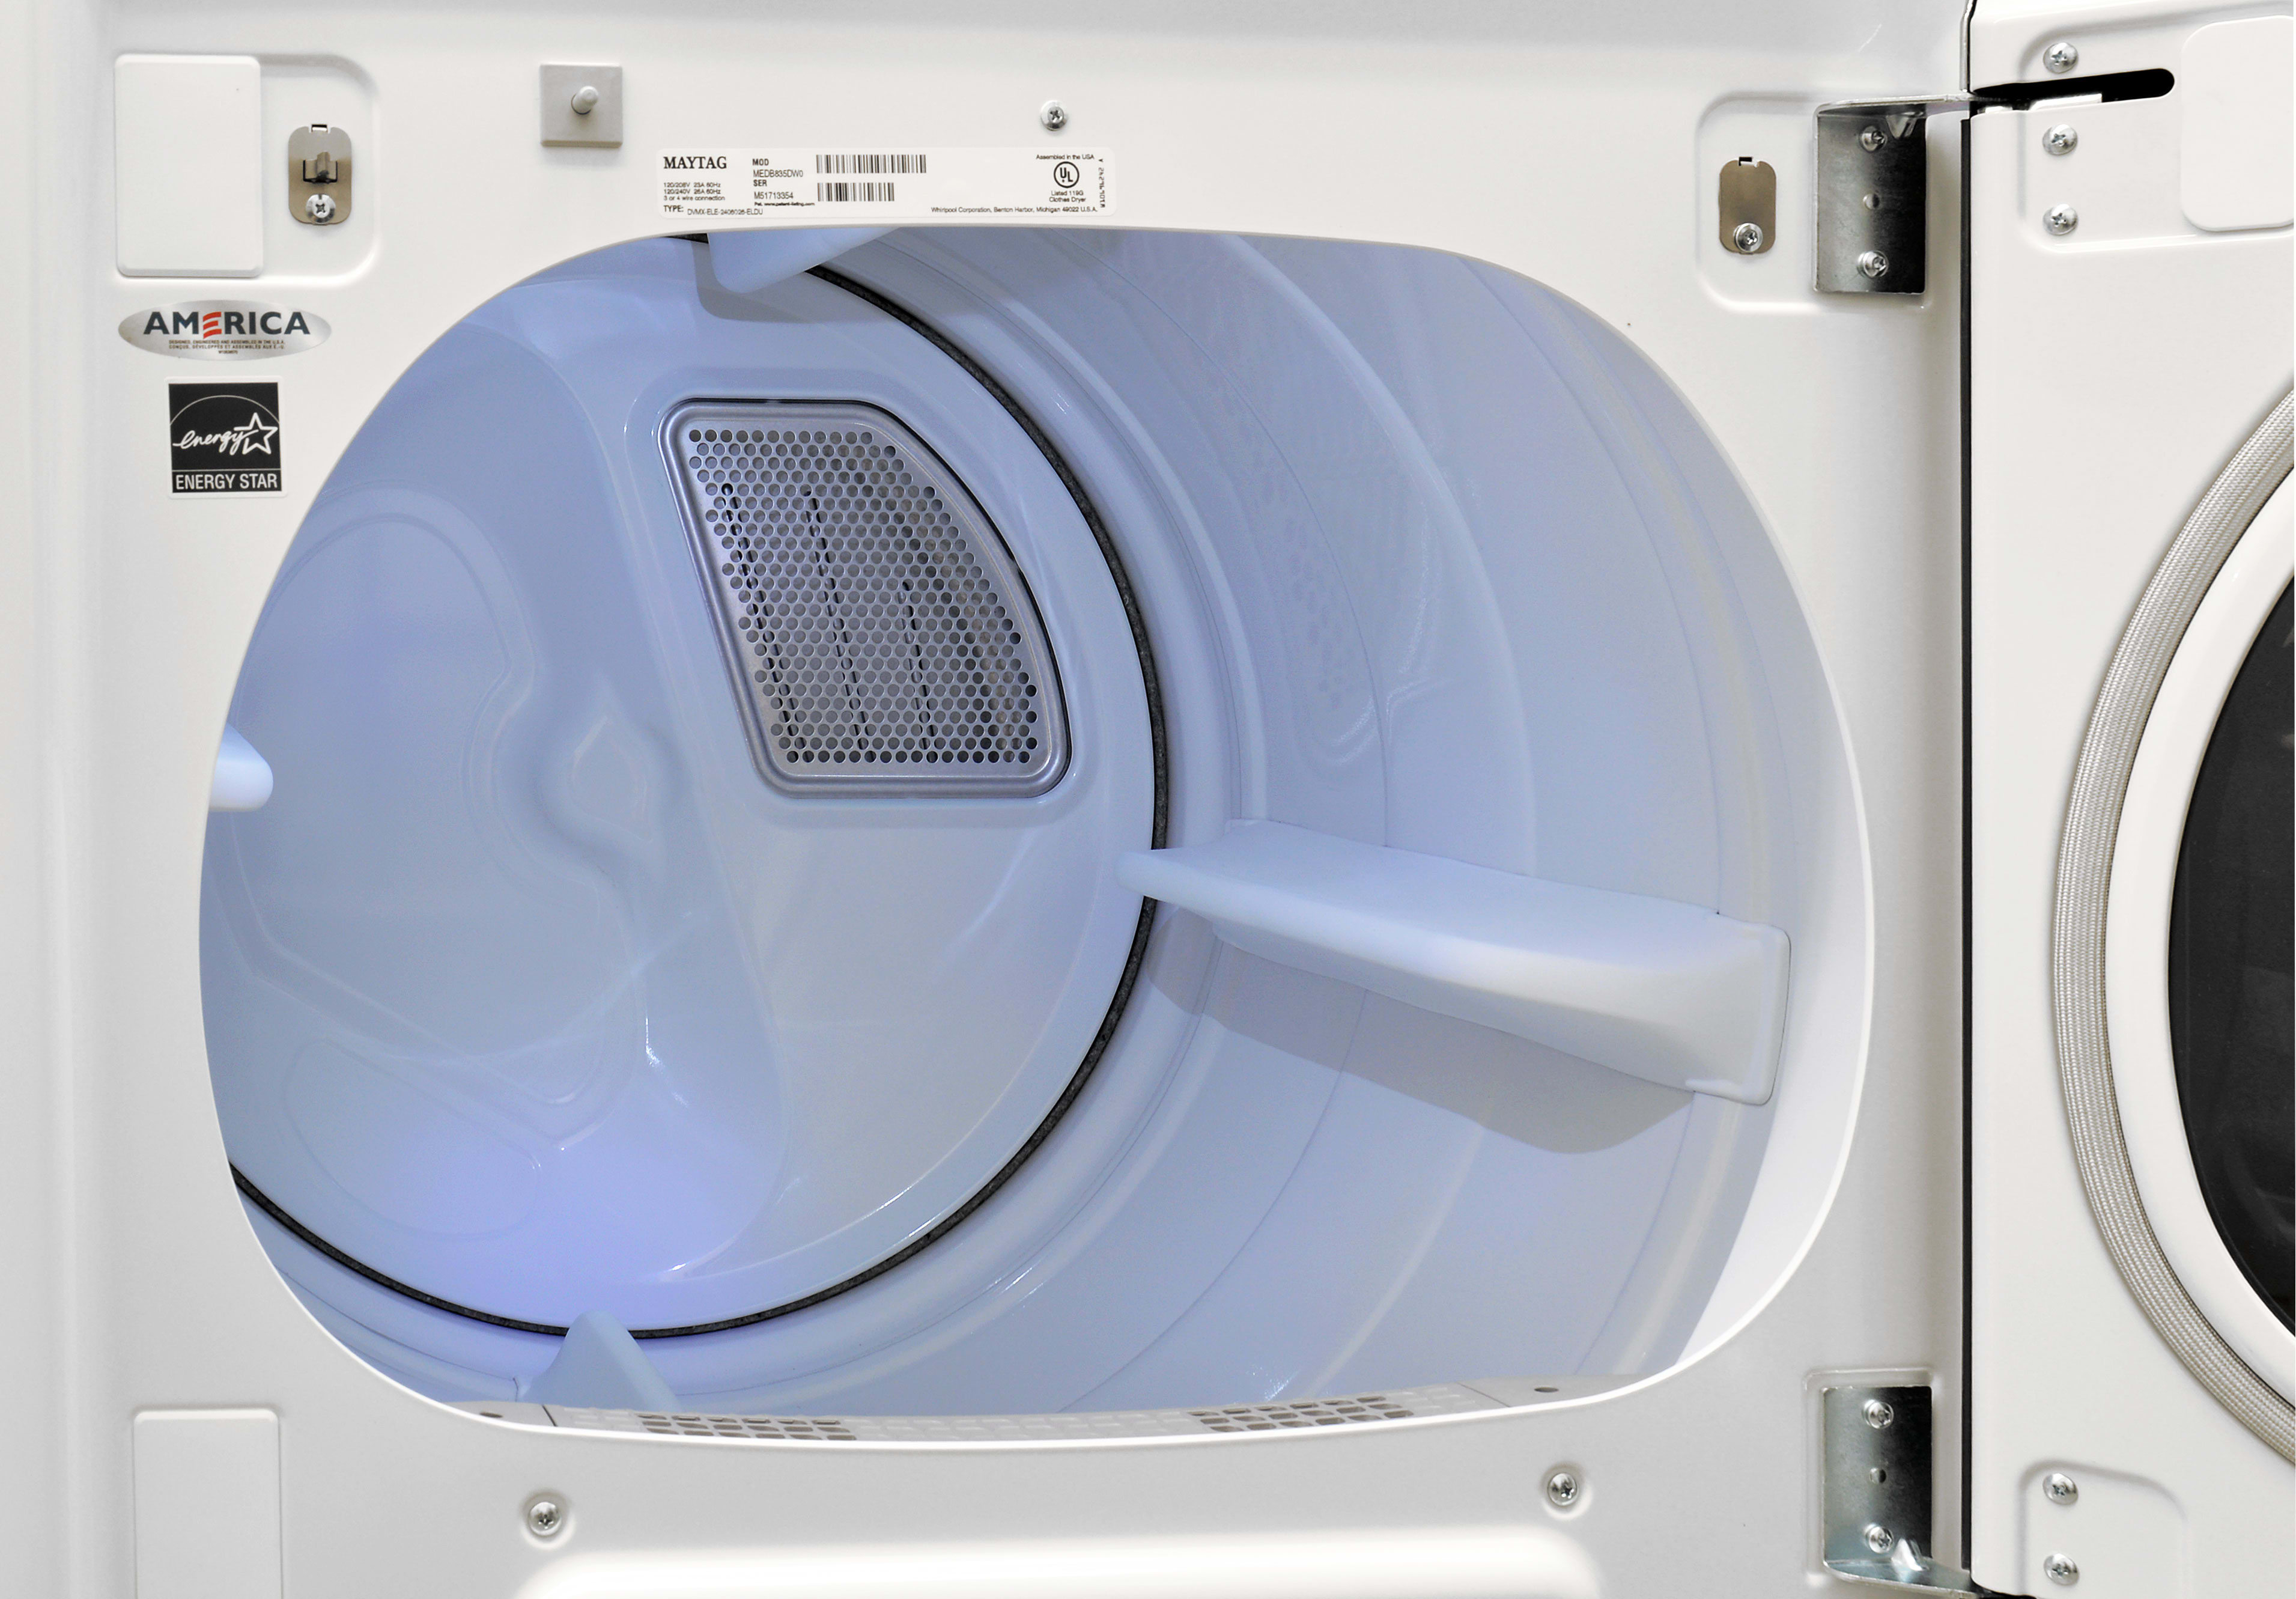 The Maytag Bravos MEDB835DW costs almost as much as you should pay for a dryer without a stainless interior drum